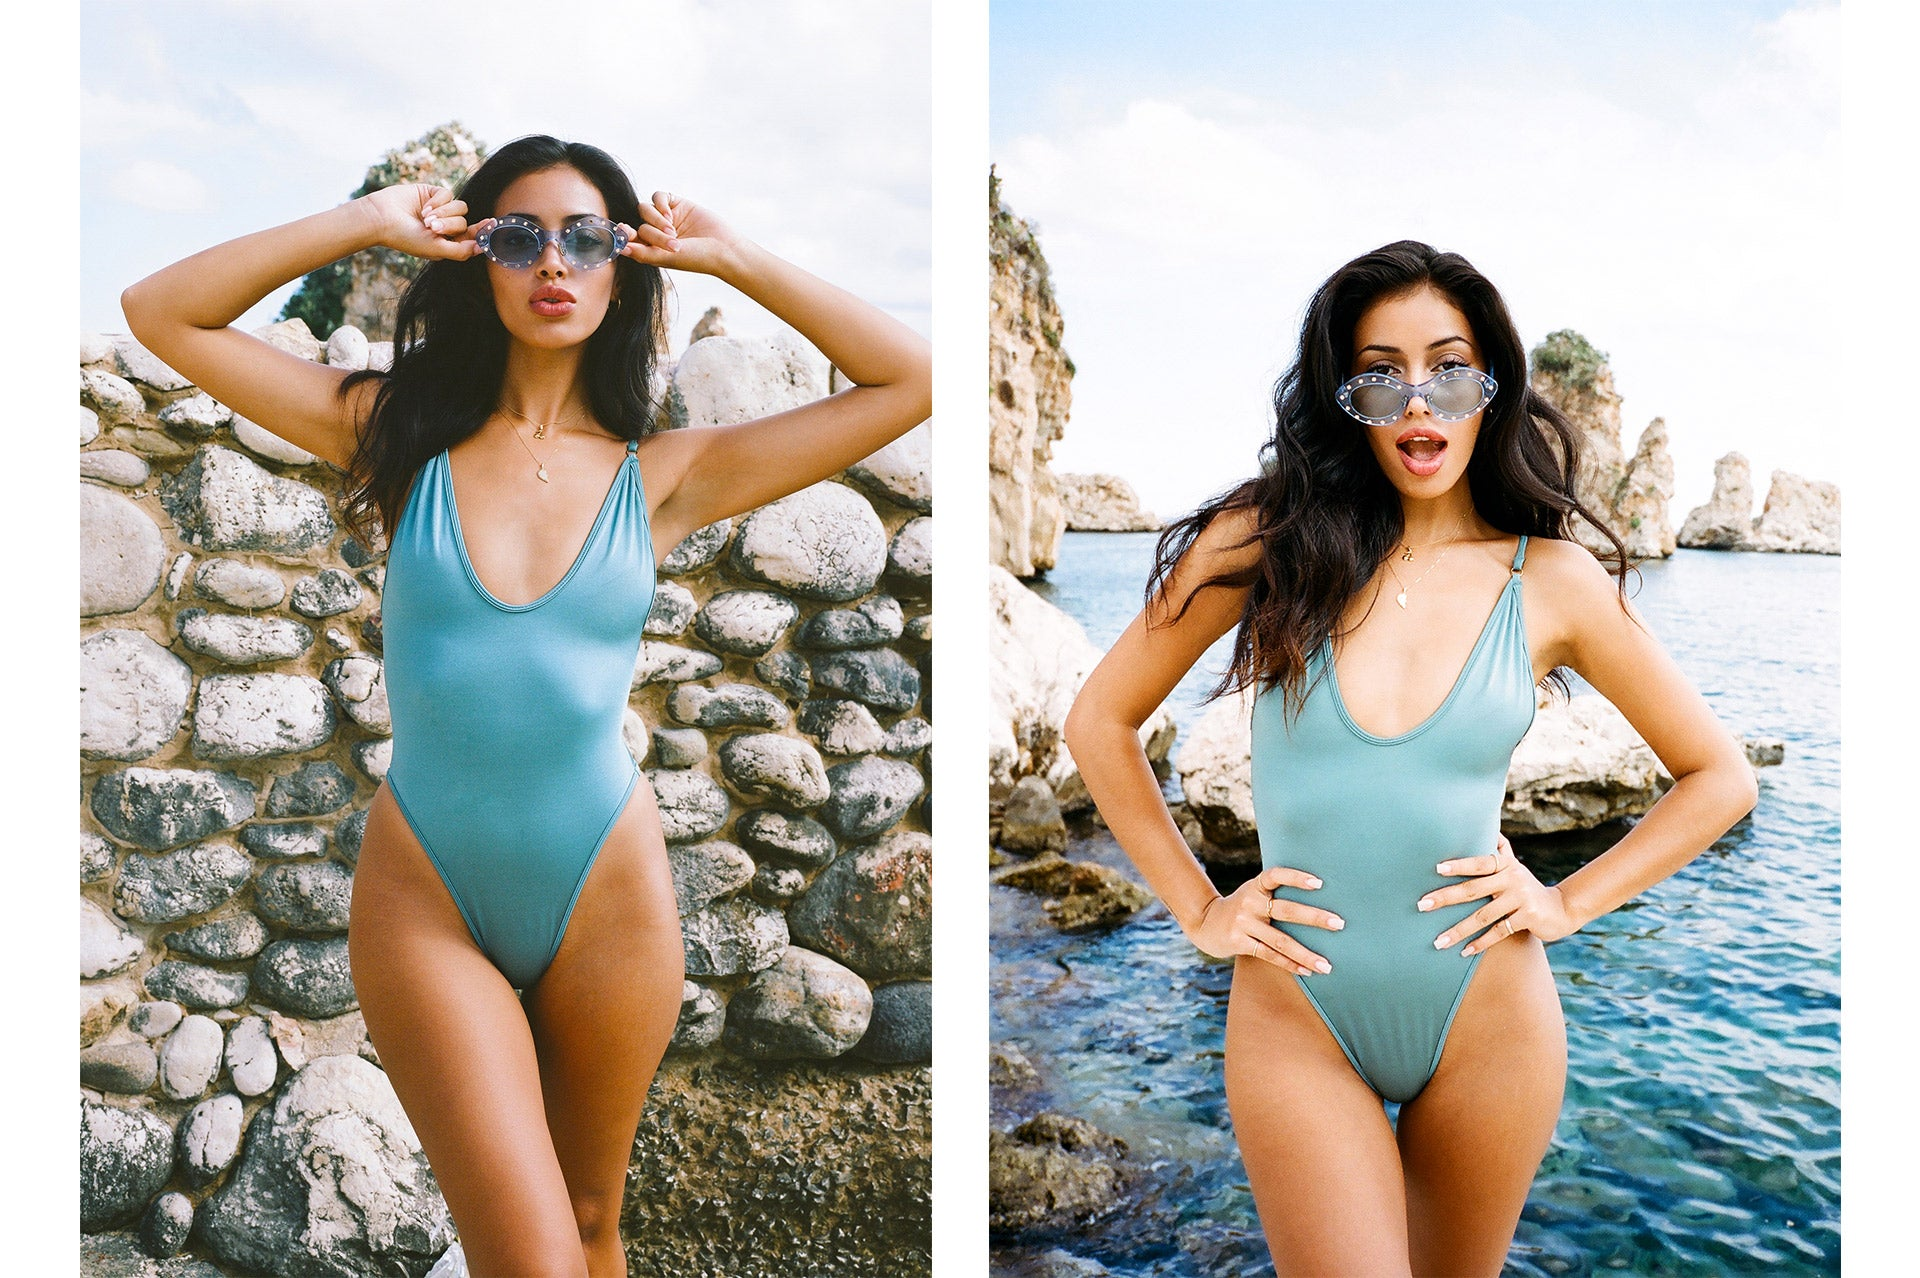 Cindy Kimberly wearing the So Chic One Piece in Blue Lagoon with a matching pair of sunglasses